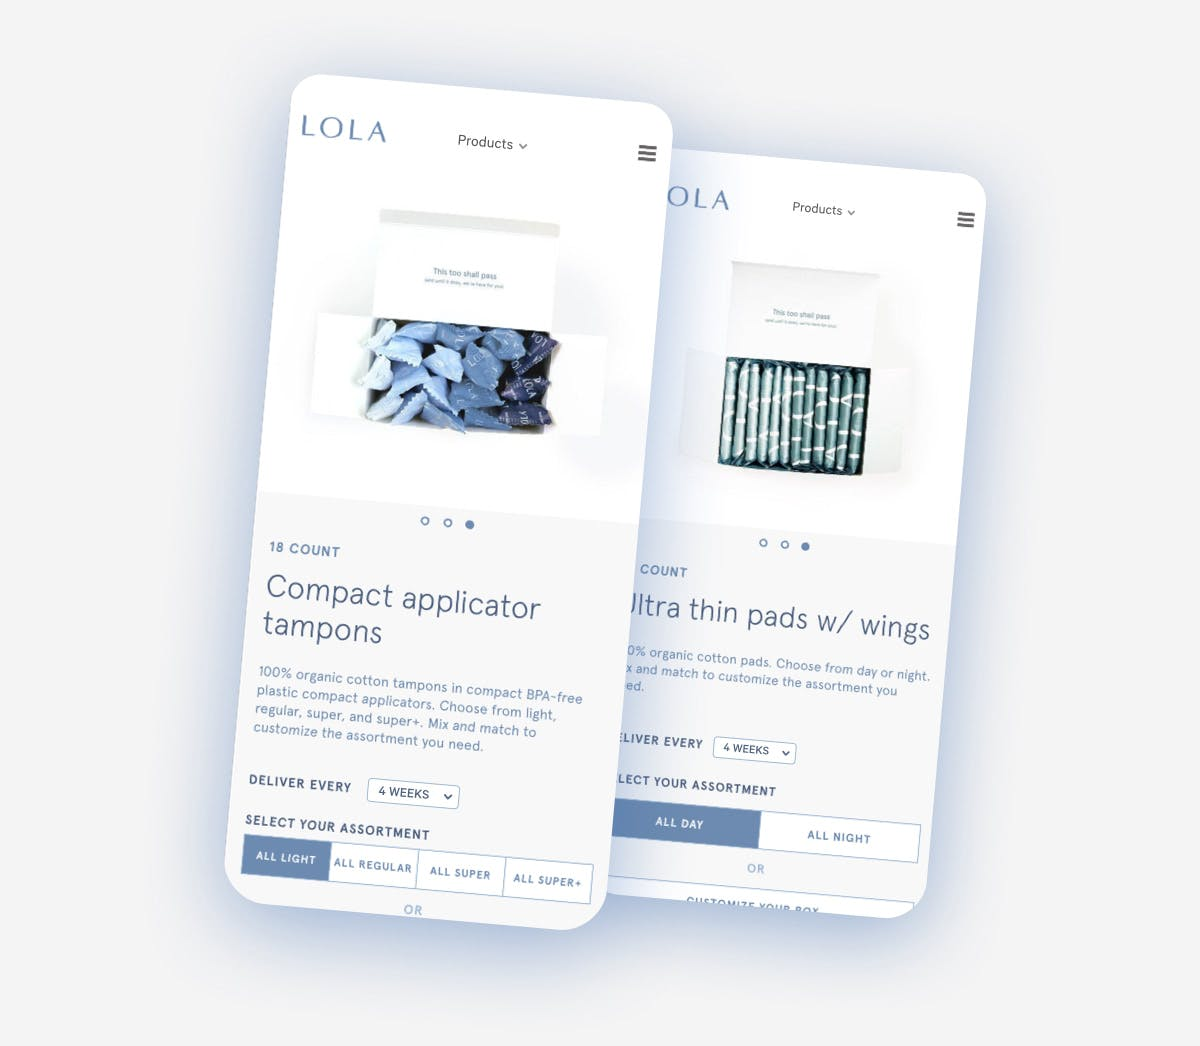 LOLA Product Page